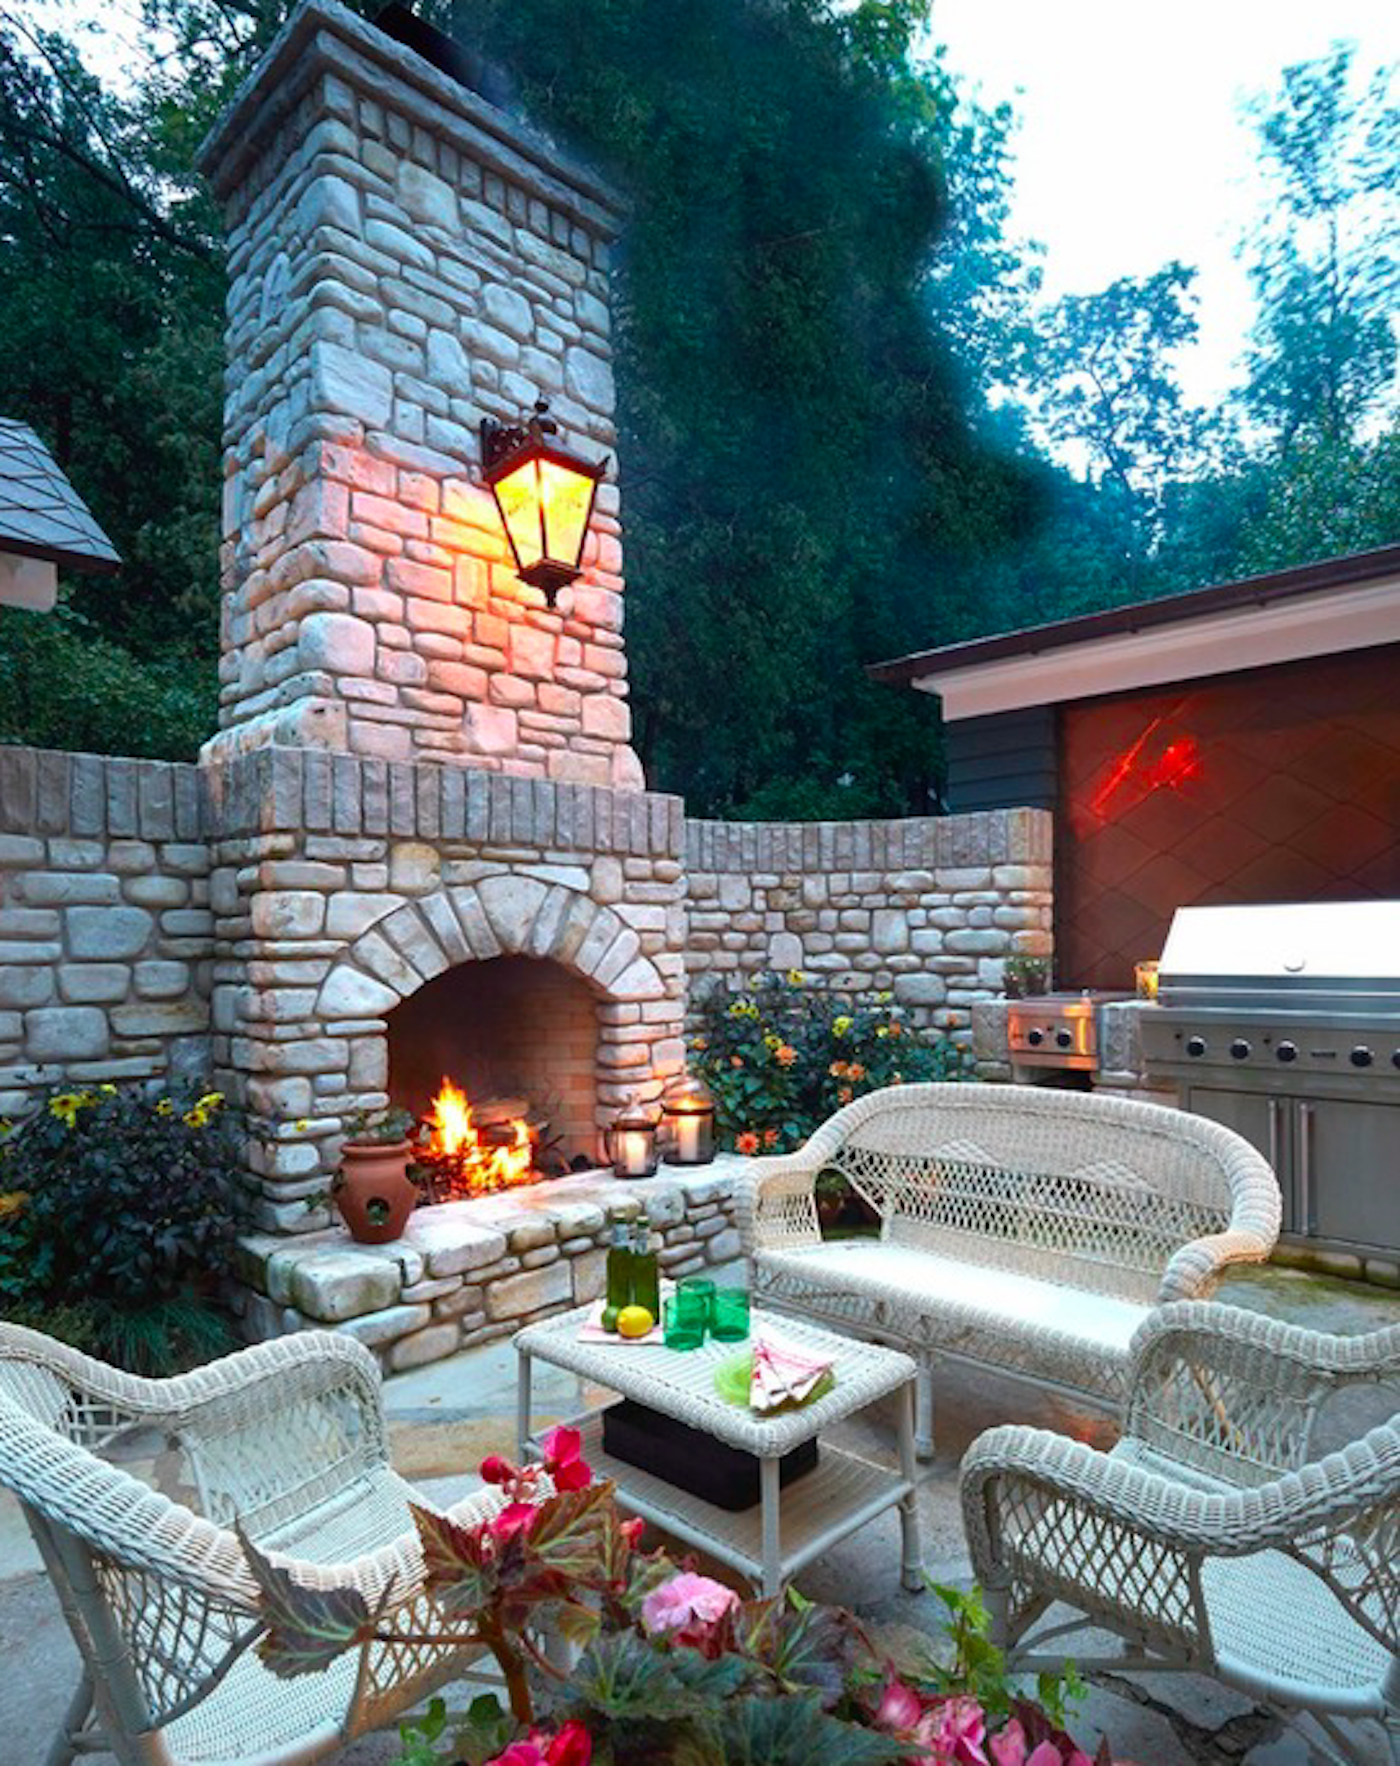 Outdoor fireplace for warm entertaining. by Schlagenhaft Studio